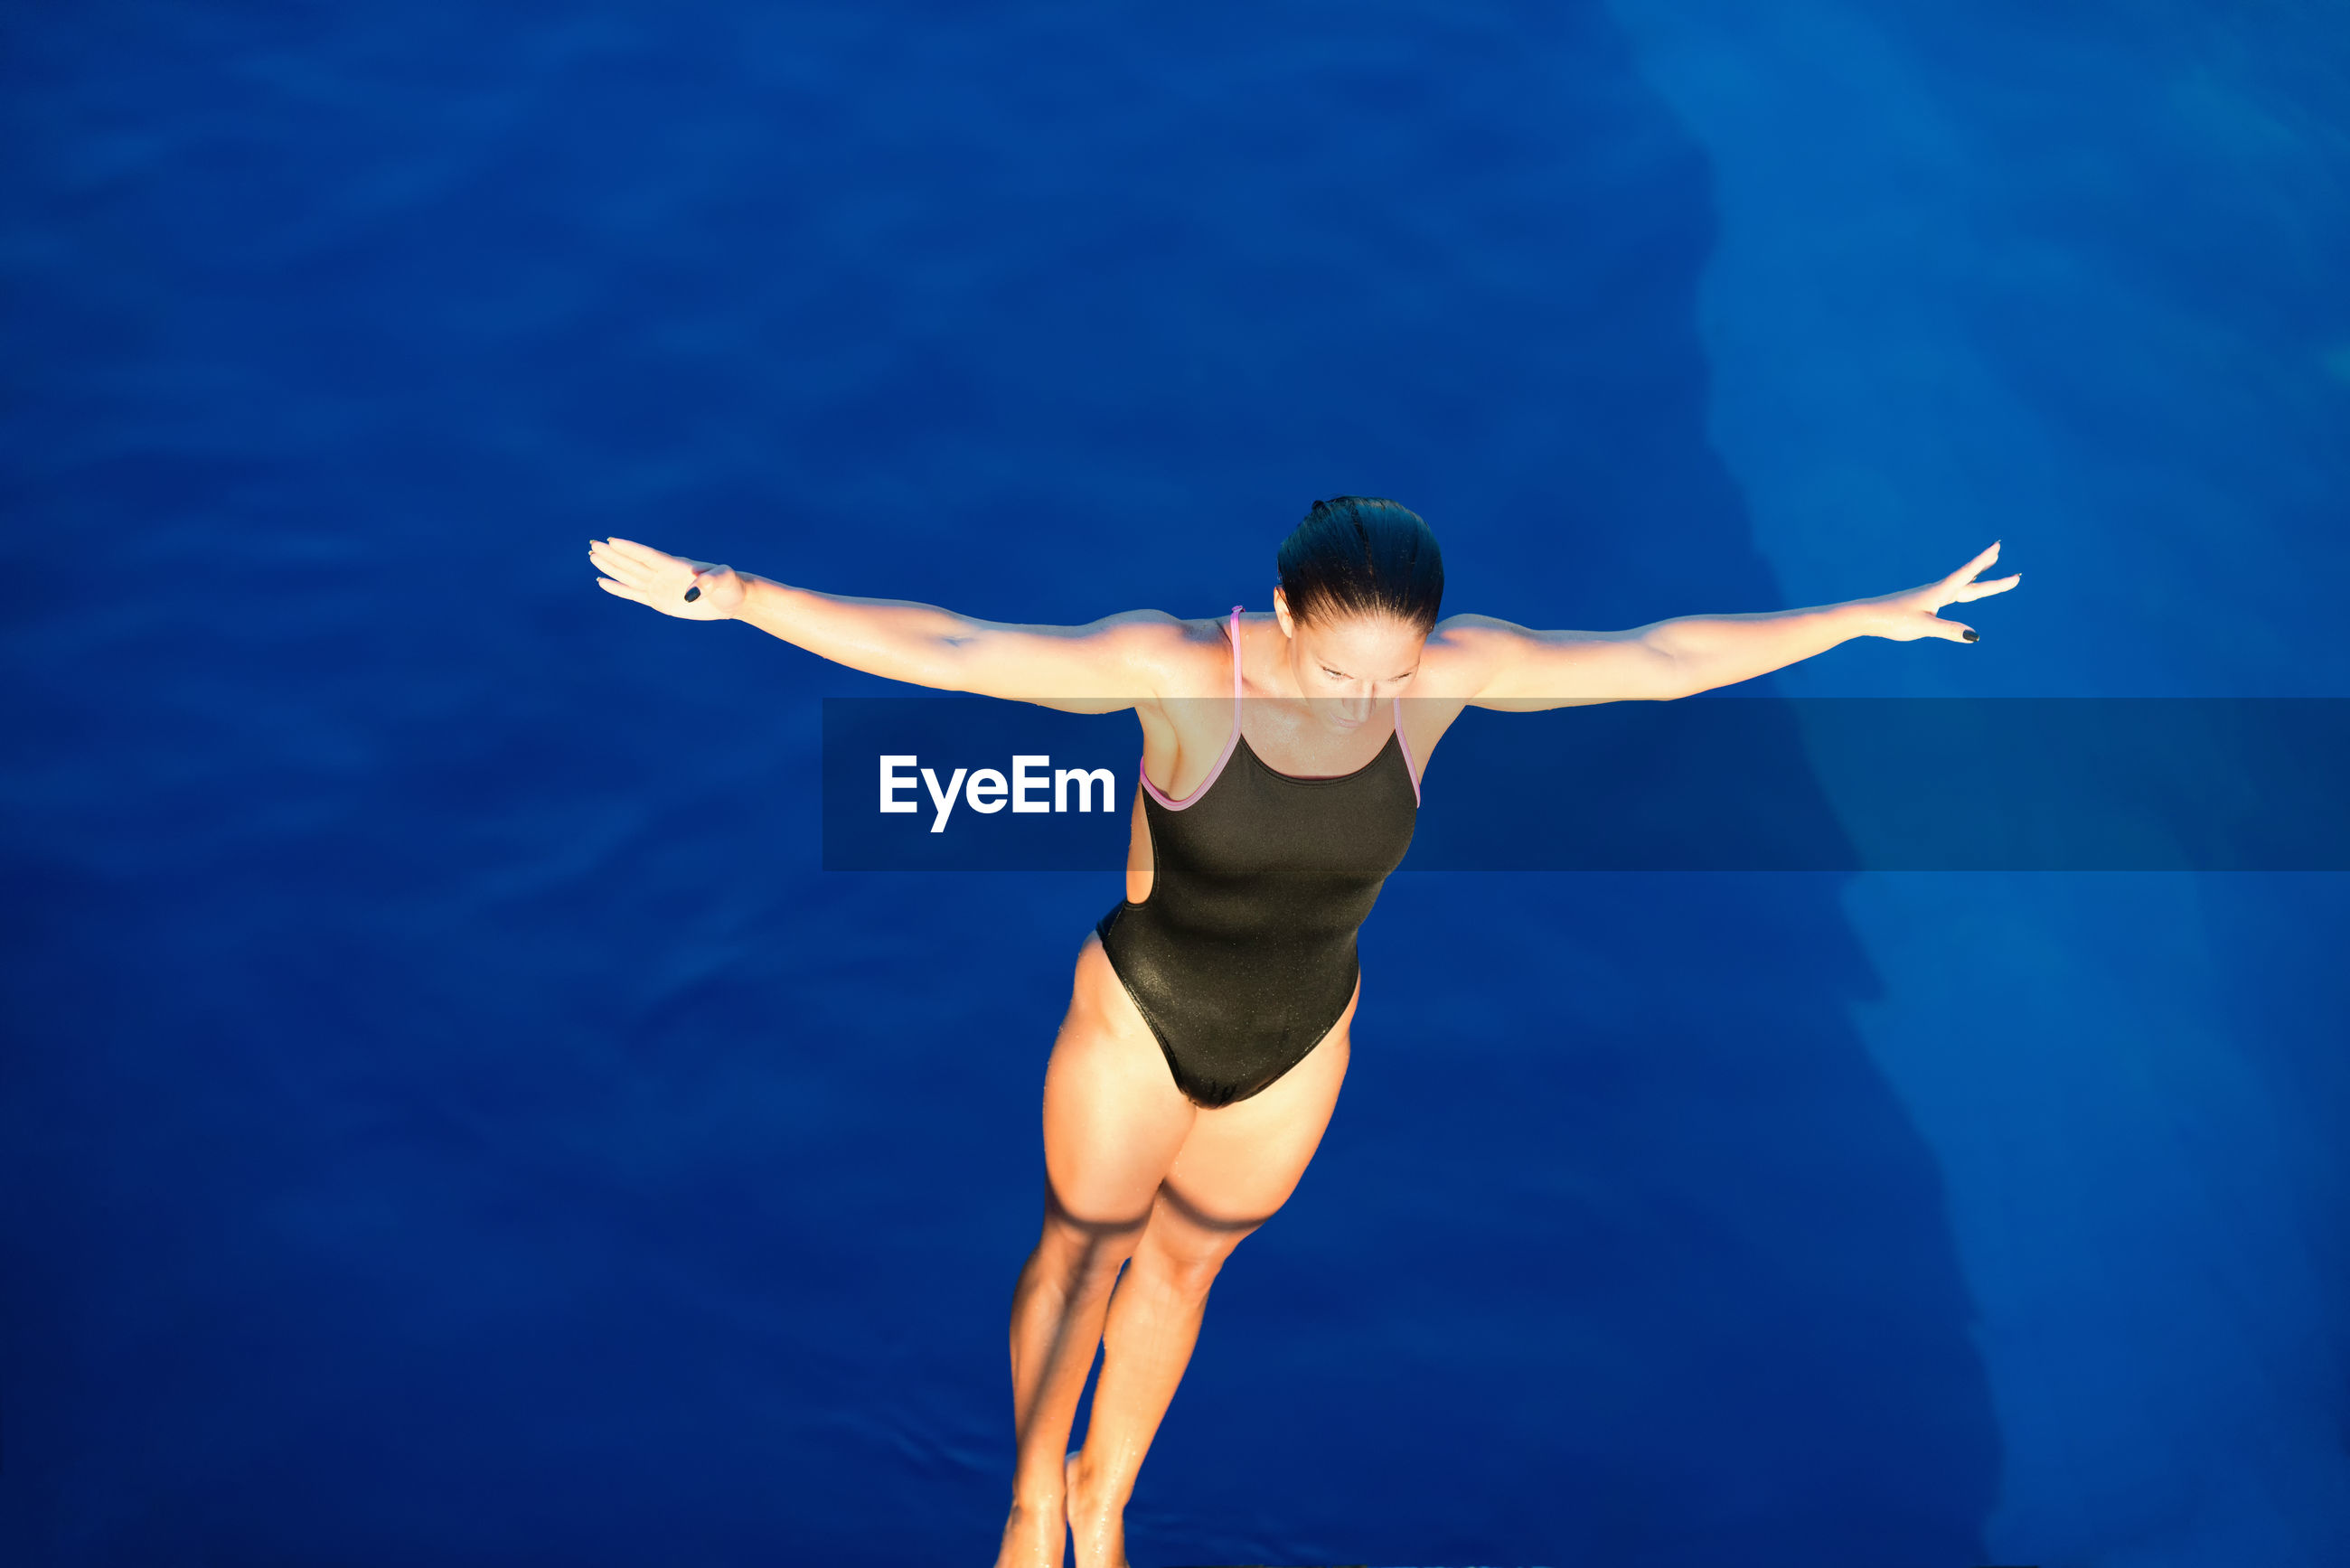 High angle view of woman with arms outstretched diving into swimming pool